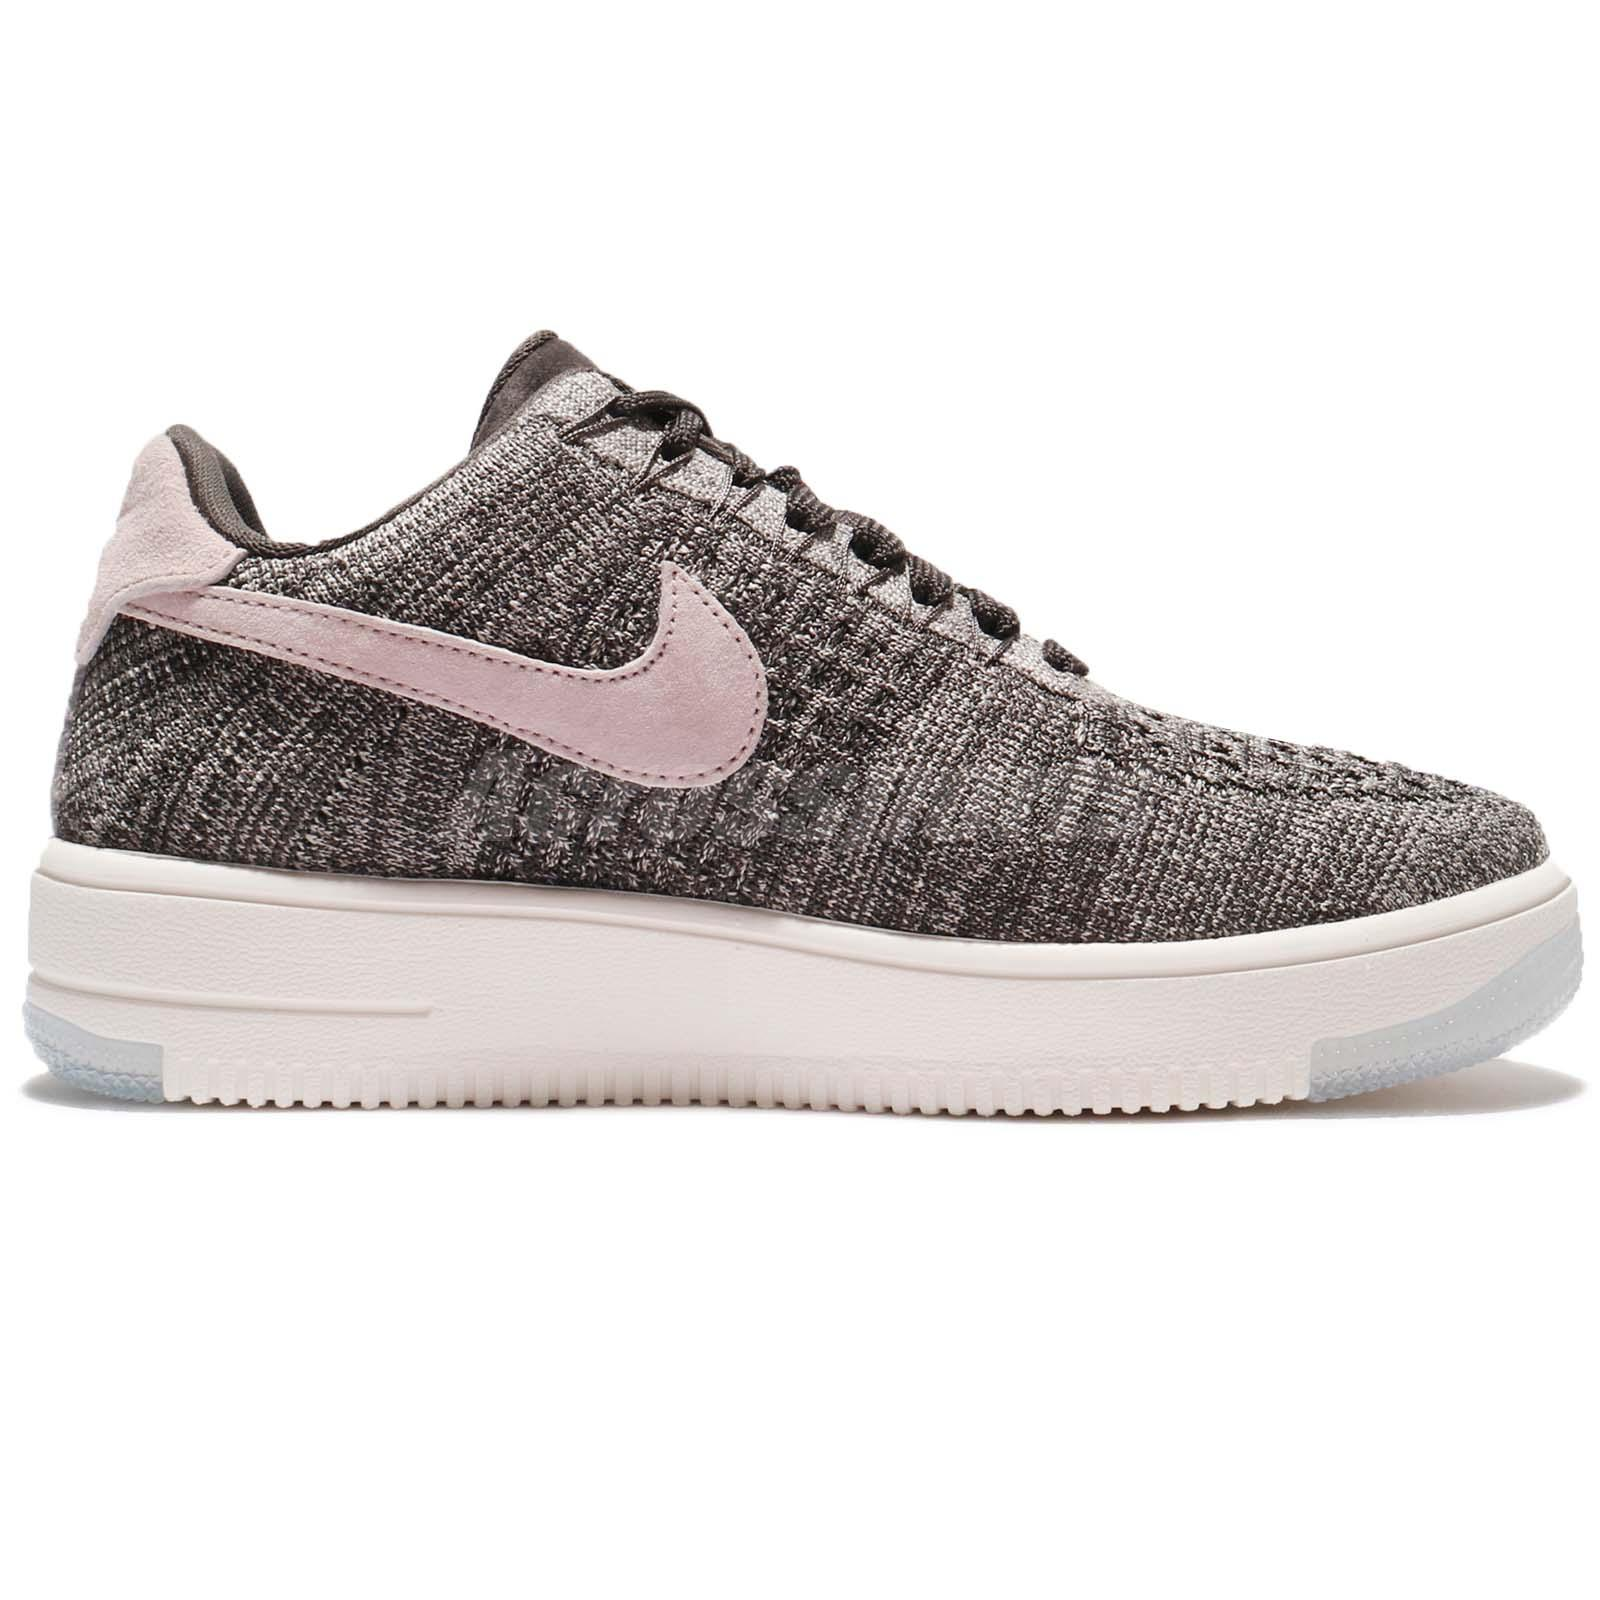 Nike Wmns AF1 Flyknit Low Air Force 1 Midnight Fog Silt Red Women 820256008